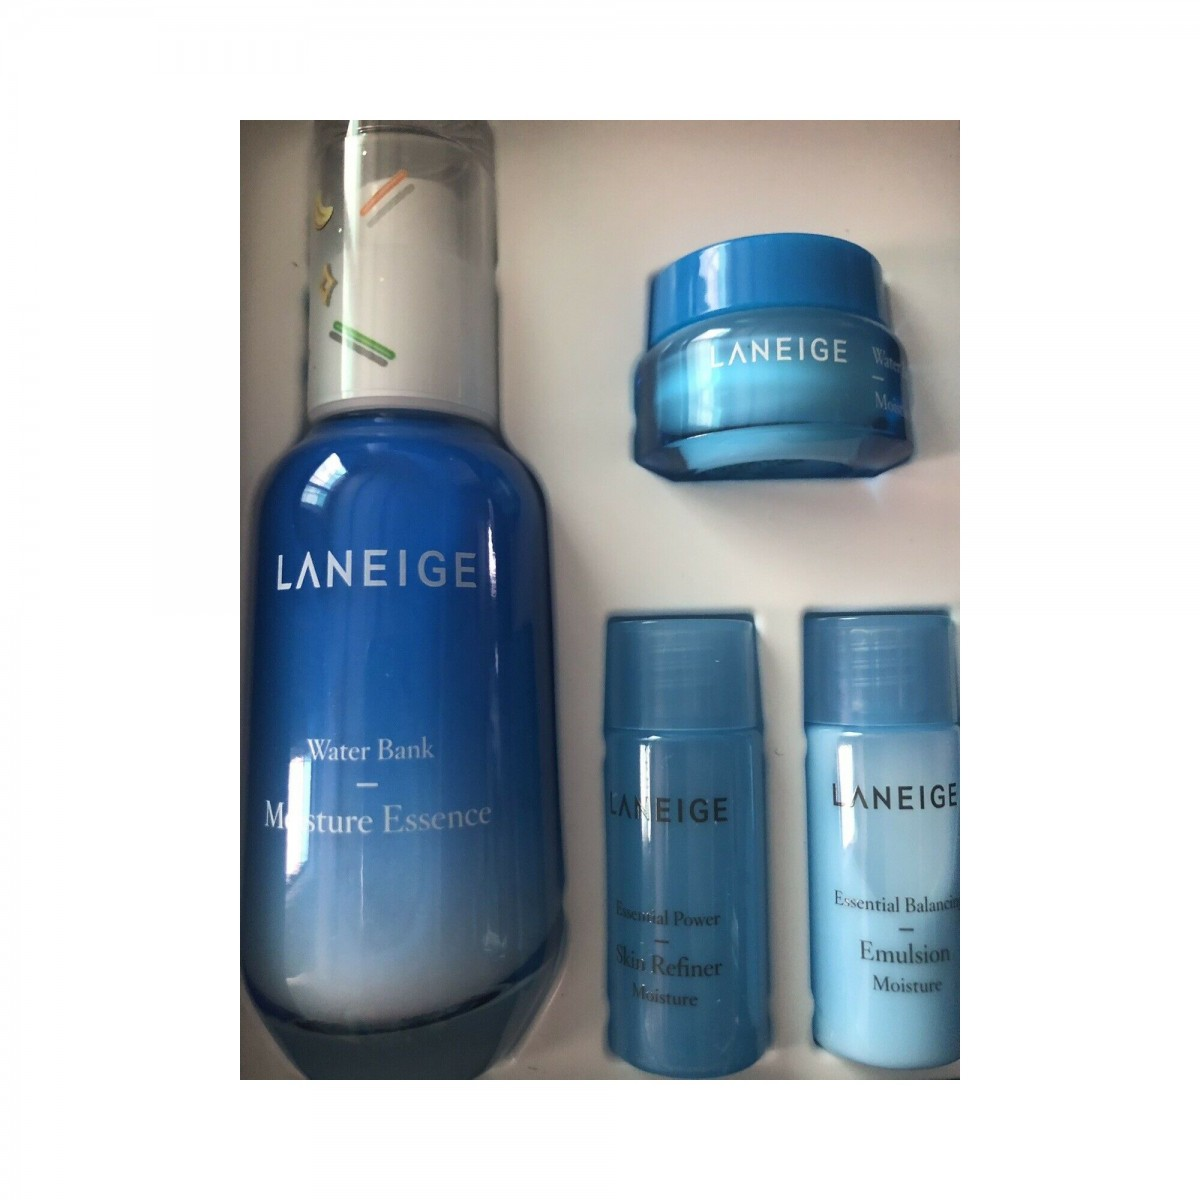 Laneige Water Bank Moisture Essence set (Holiday Collection Limited)